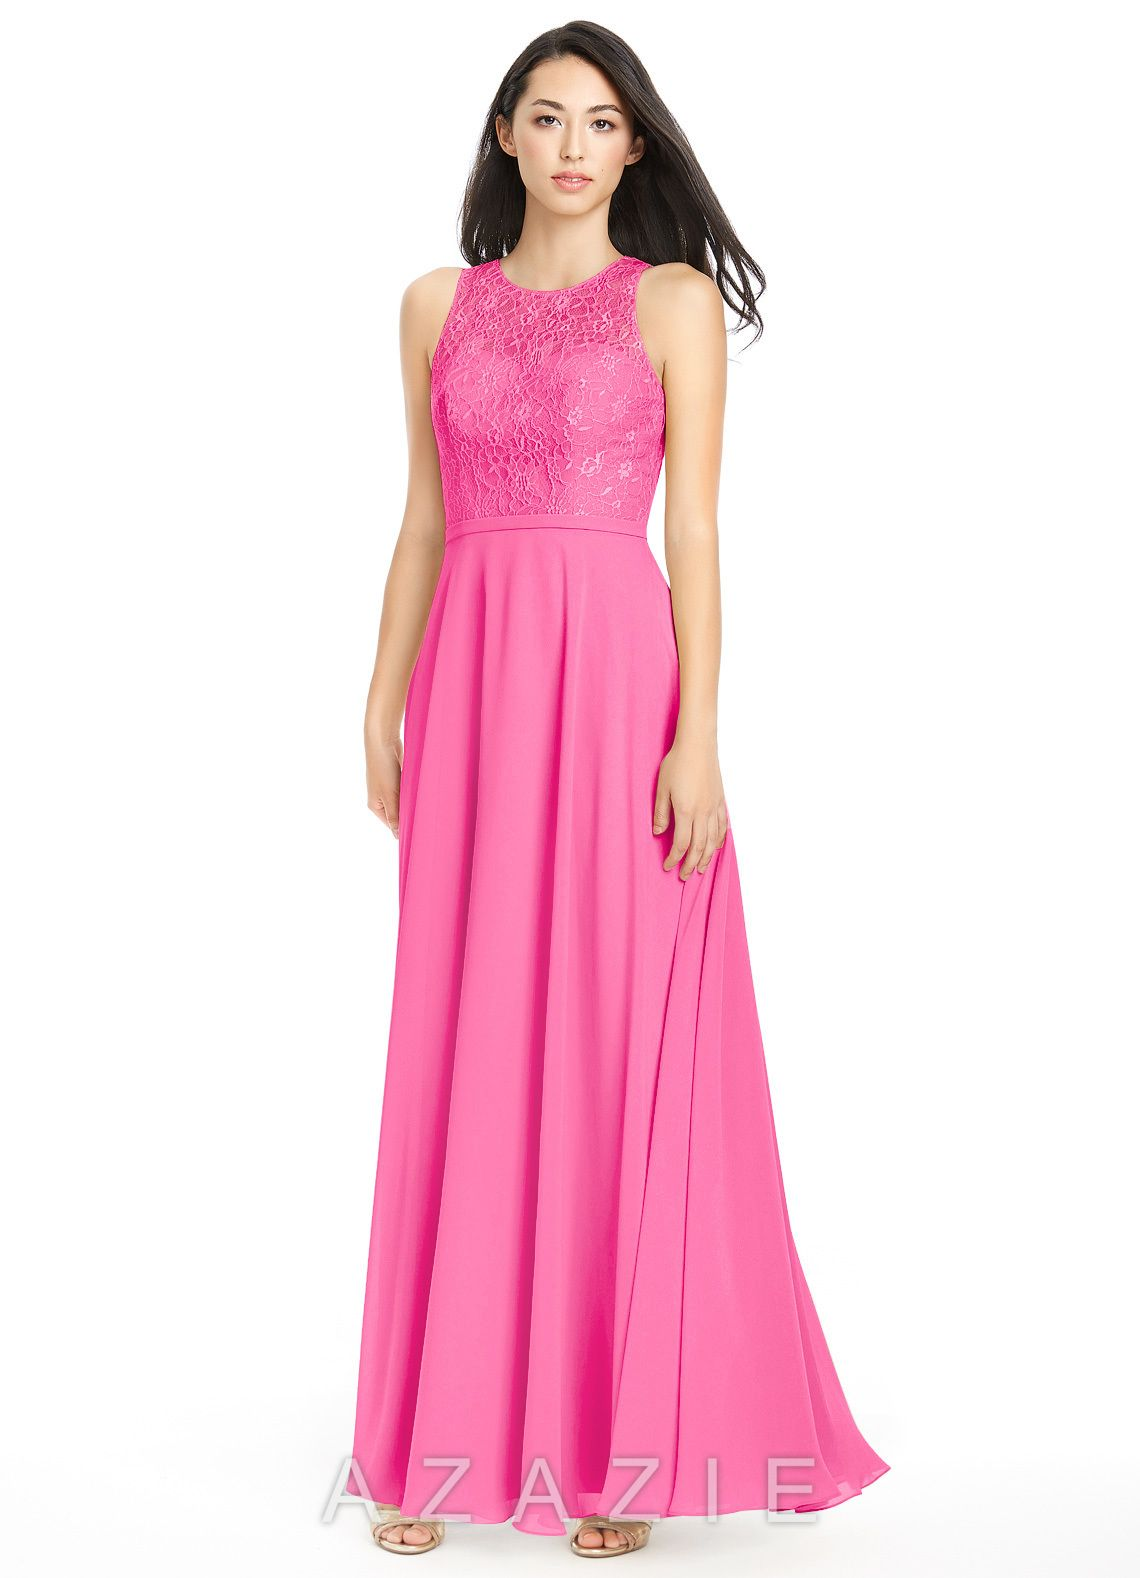 56eeb280216 Shop Azazie Bridesmaid Dress - Frederica in Chiffon. Find the perfect  made-to-order bridesmaid dresses for your bridal party in your favorite  color